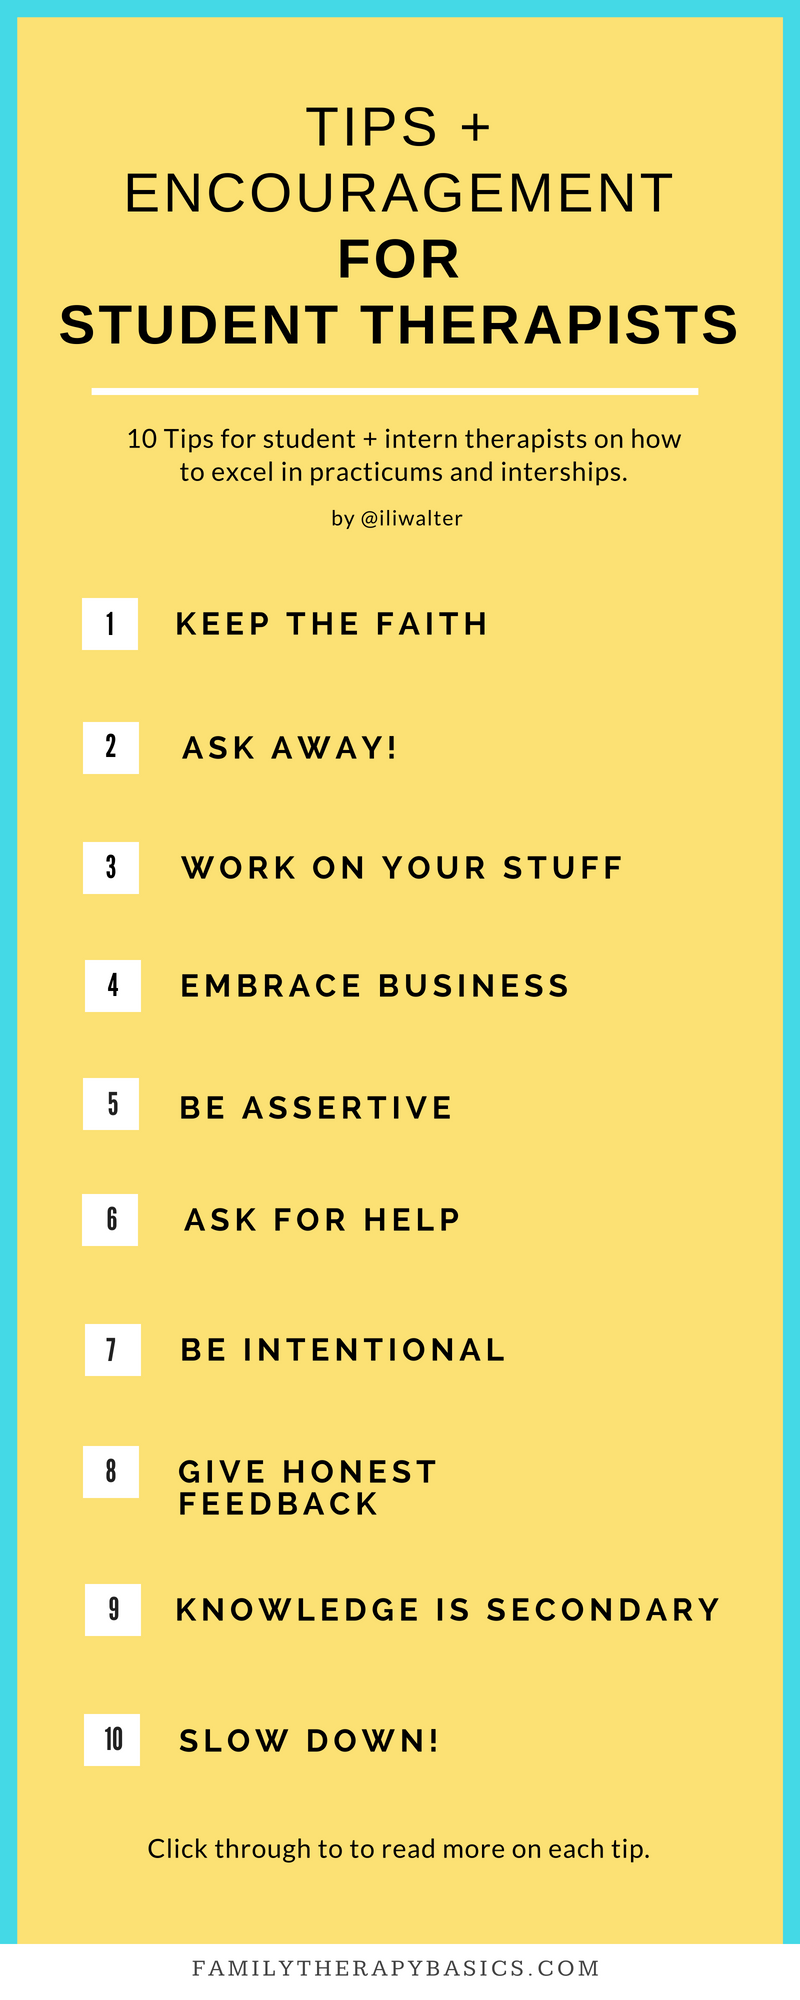 Tips for Student Therapists Infographic